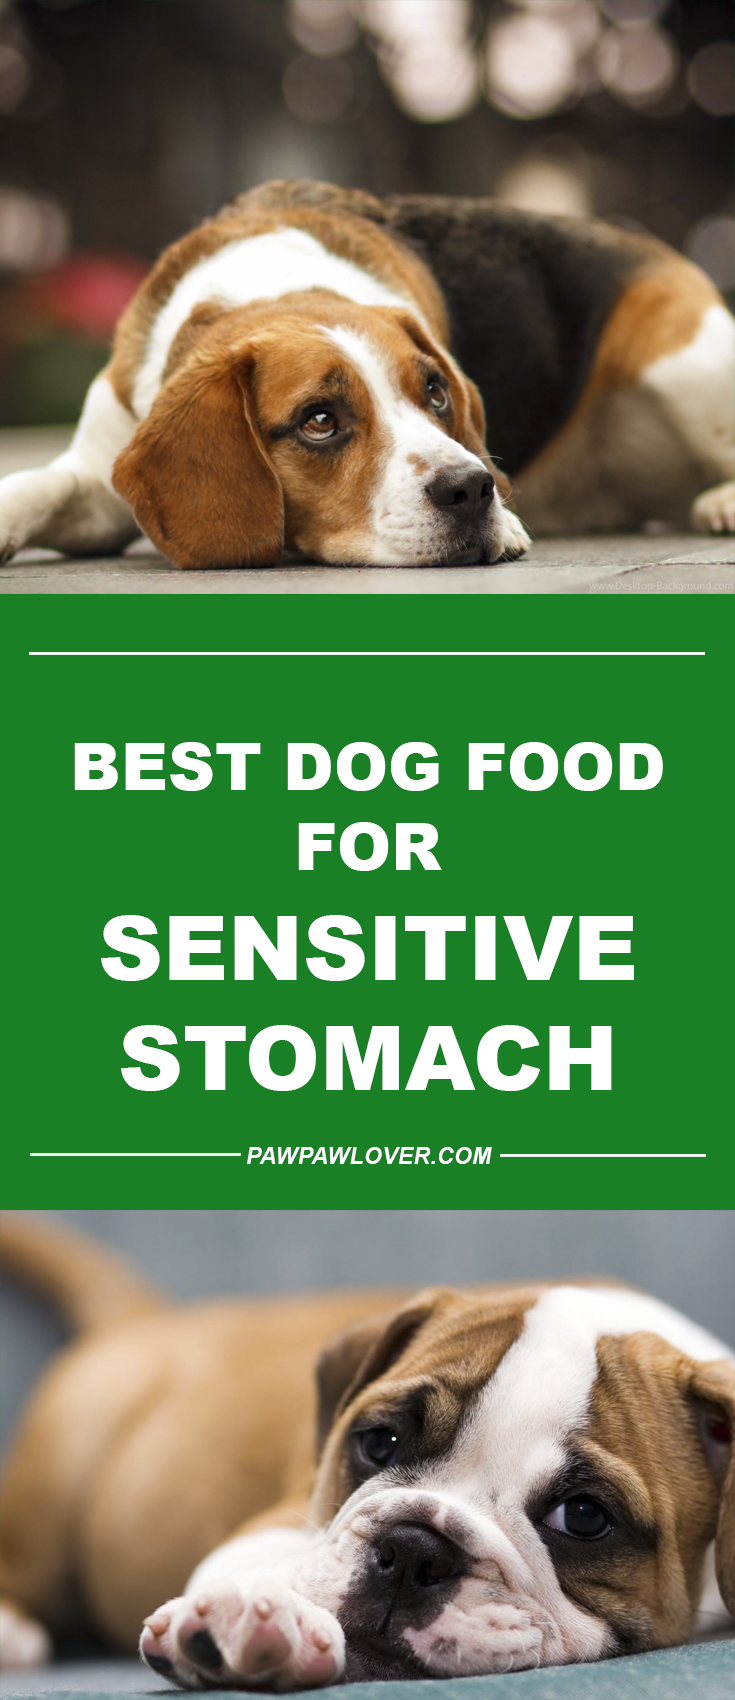 Best Dog Food For Sensitive Stomach & Diarrhea (Canned